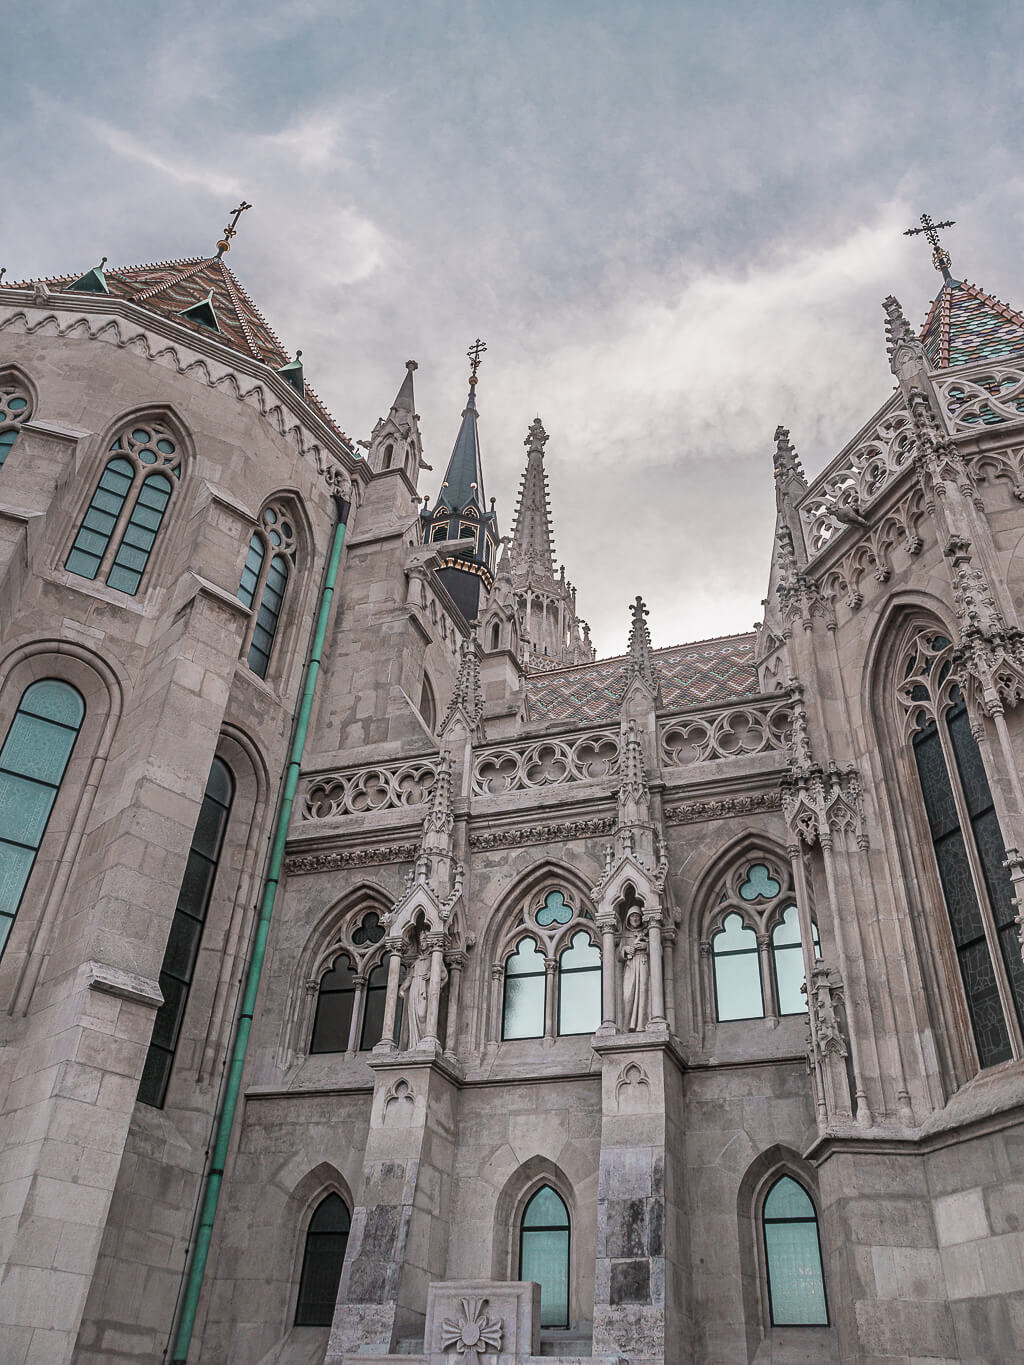 A Guide For Planning A Trip To Budapest - Things to do in the Hungarian capital {2 day itinerary, including food & restaurants tips, shopping and sightseeing}